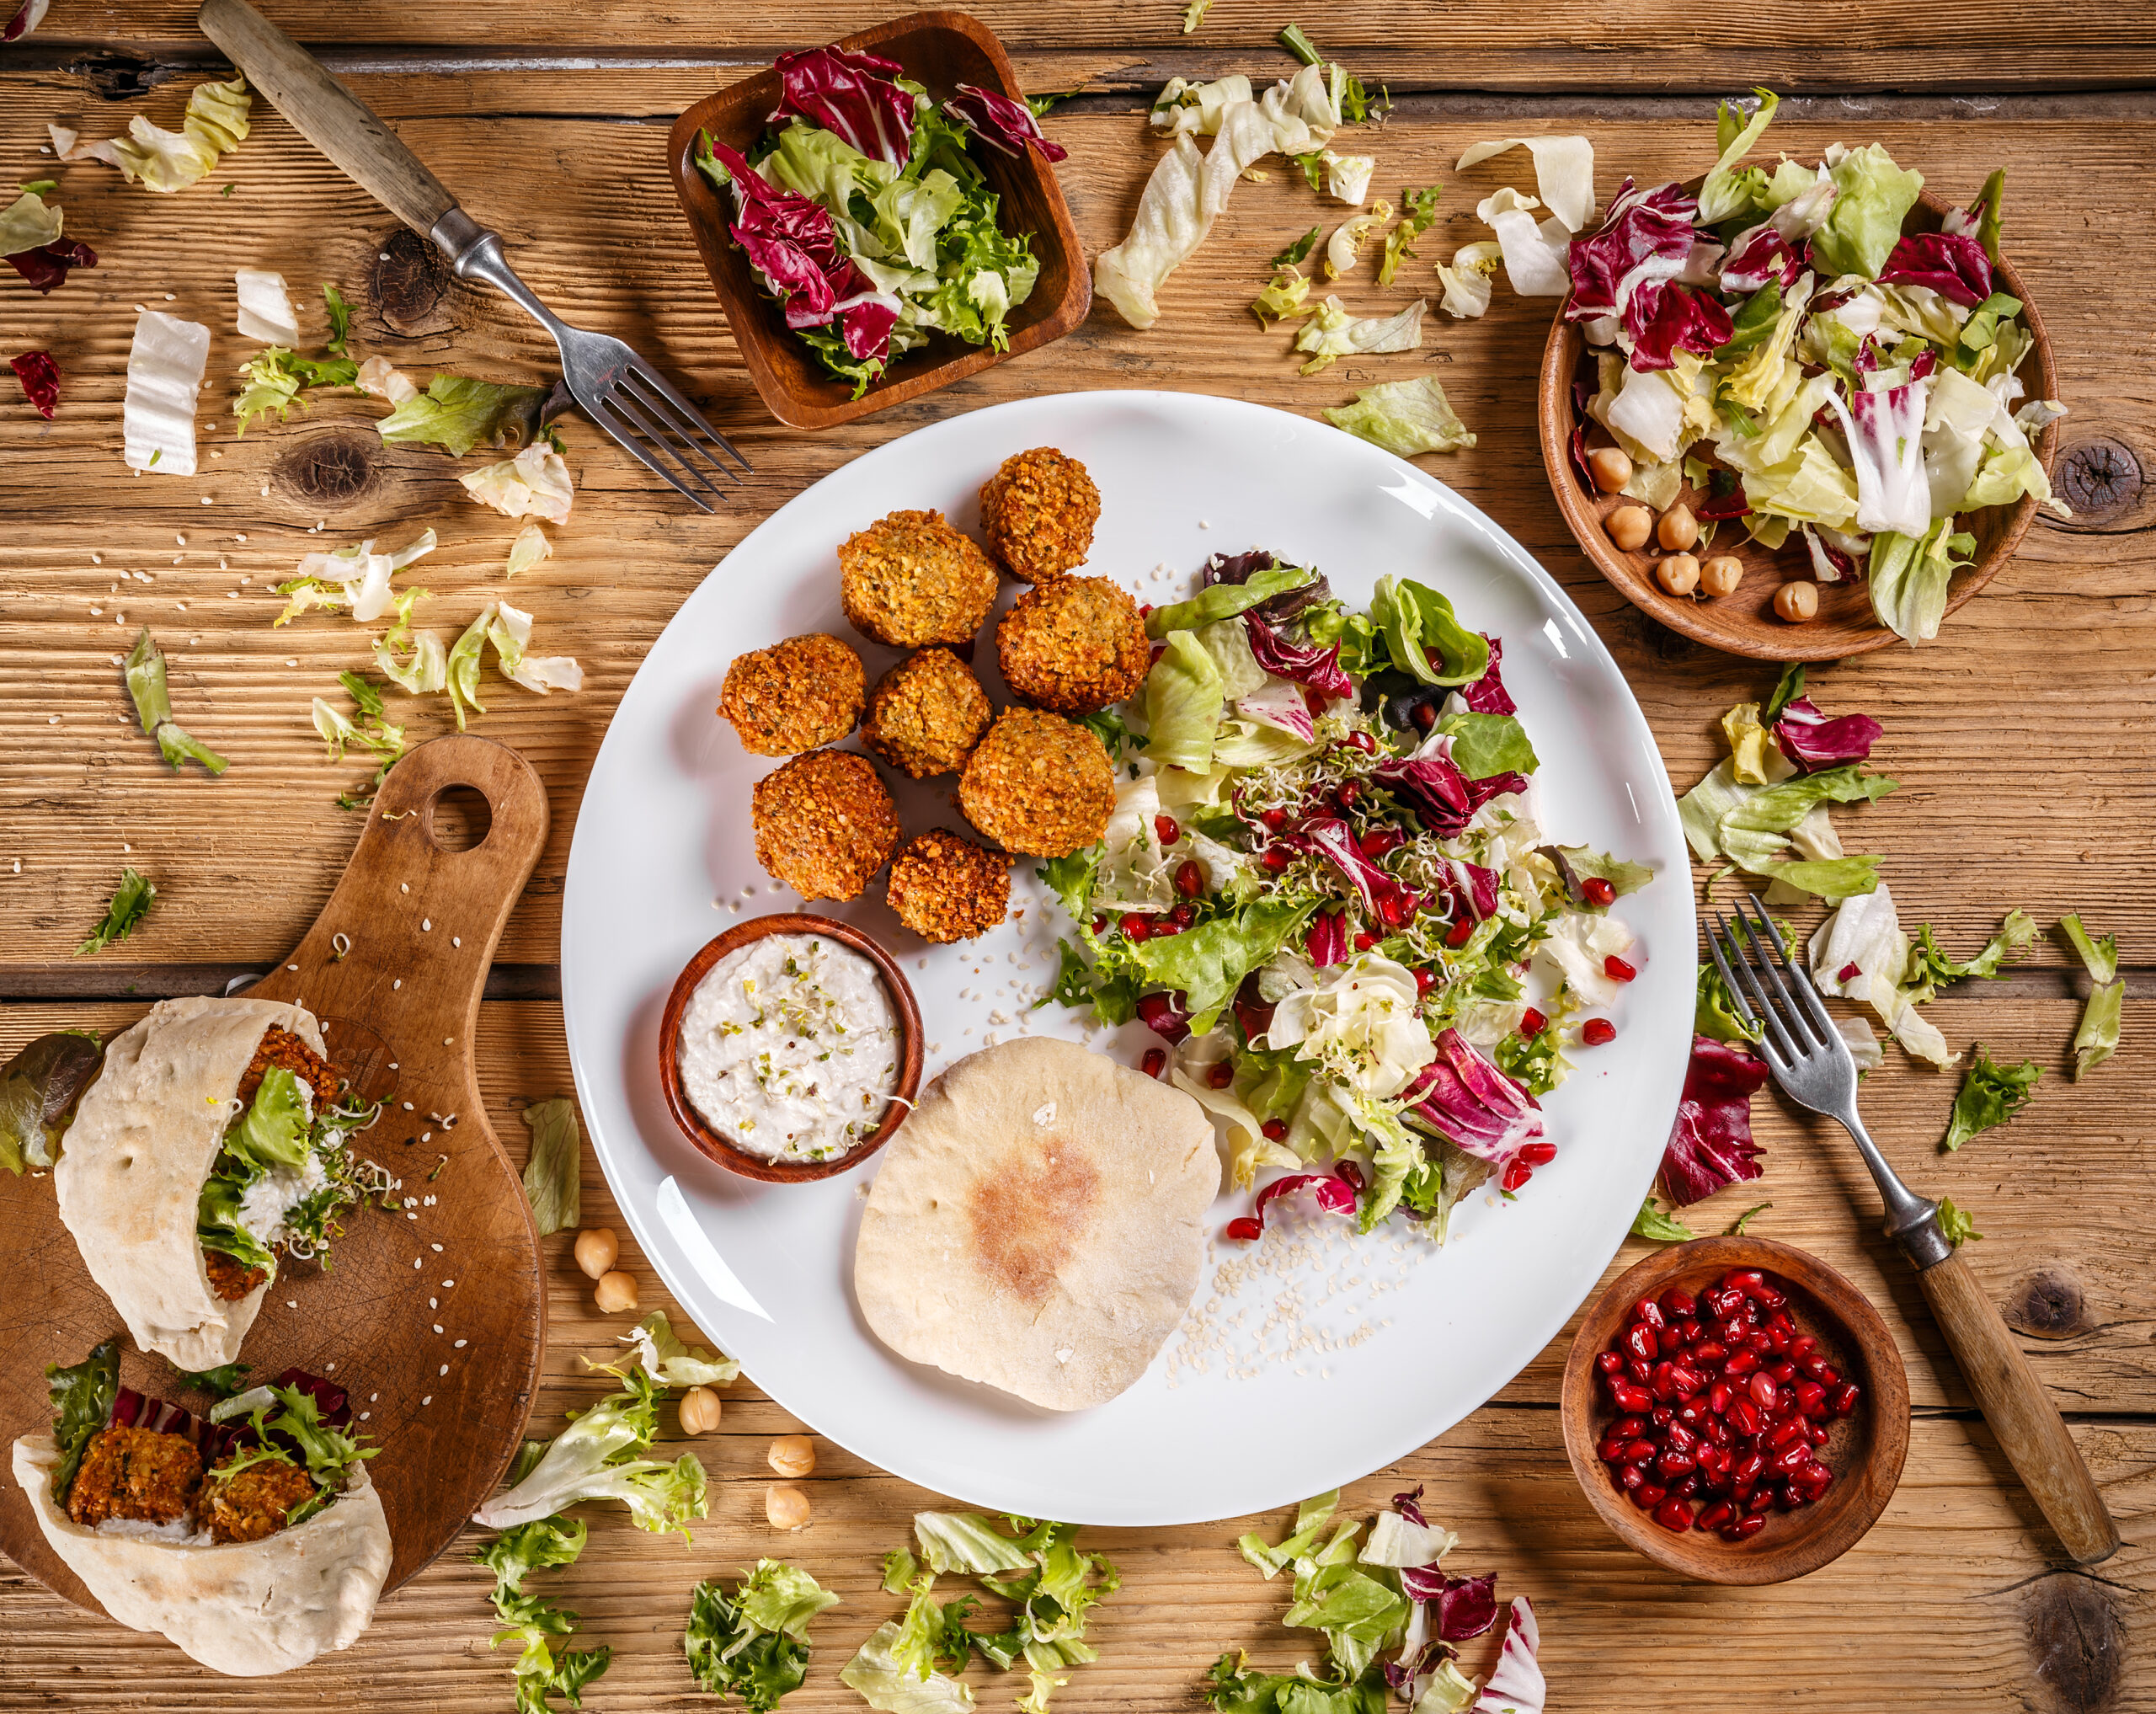 Plate of traditional falafel patties